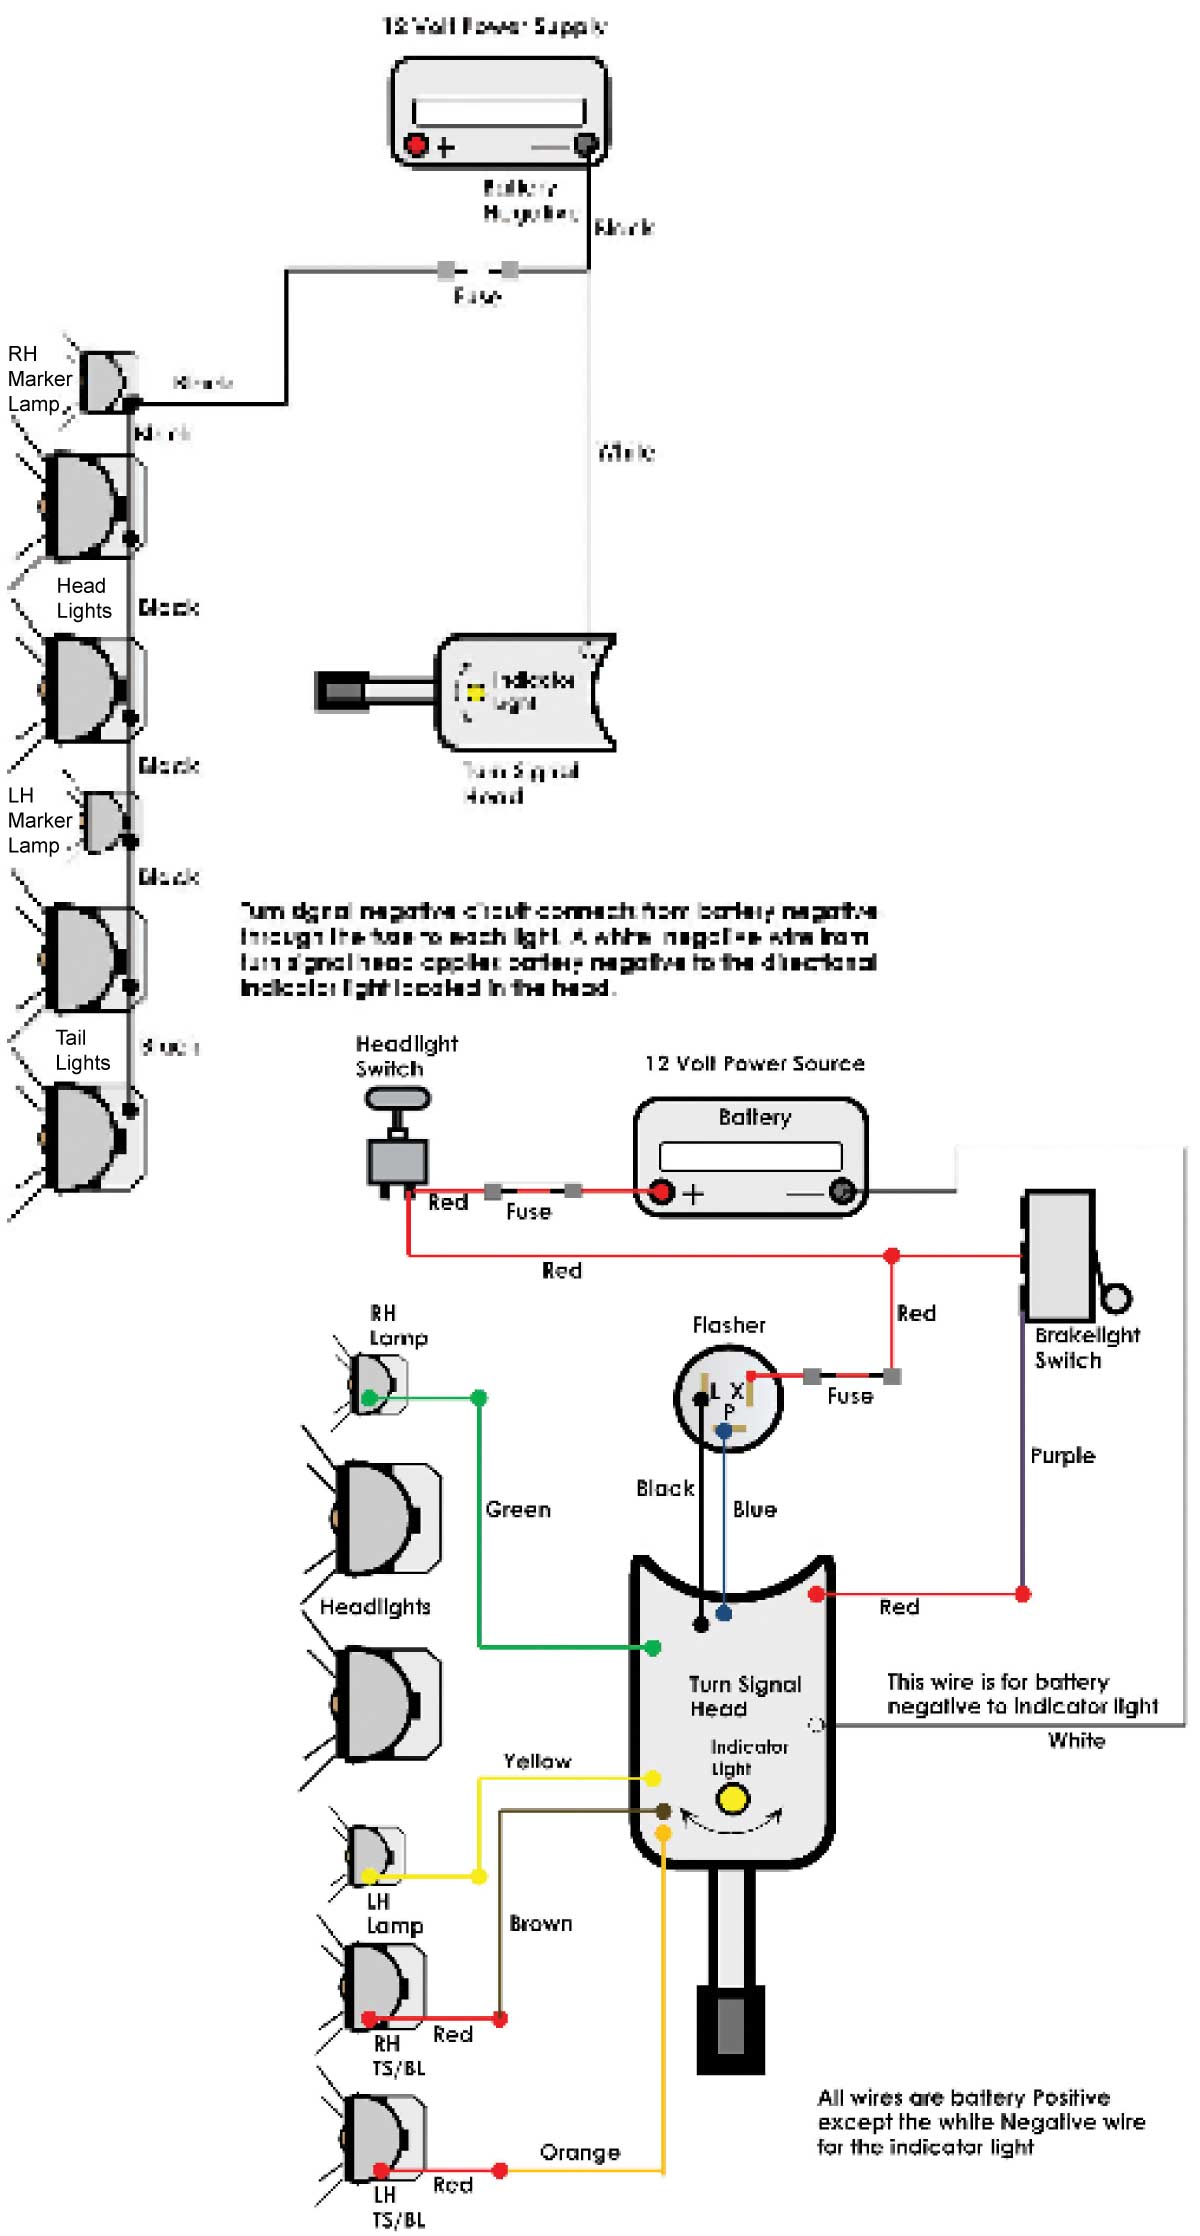 club car golf cart headlight wiring diagram 1994 jeep grand cherokee guru july august 2009 buggiesunlimited